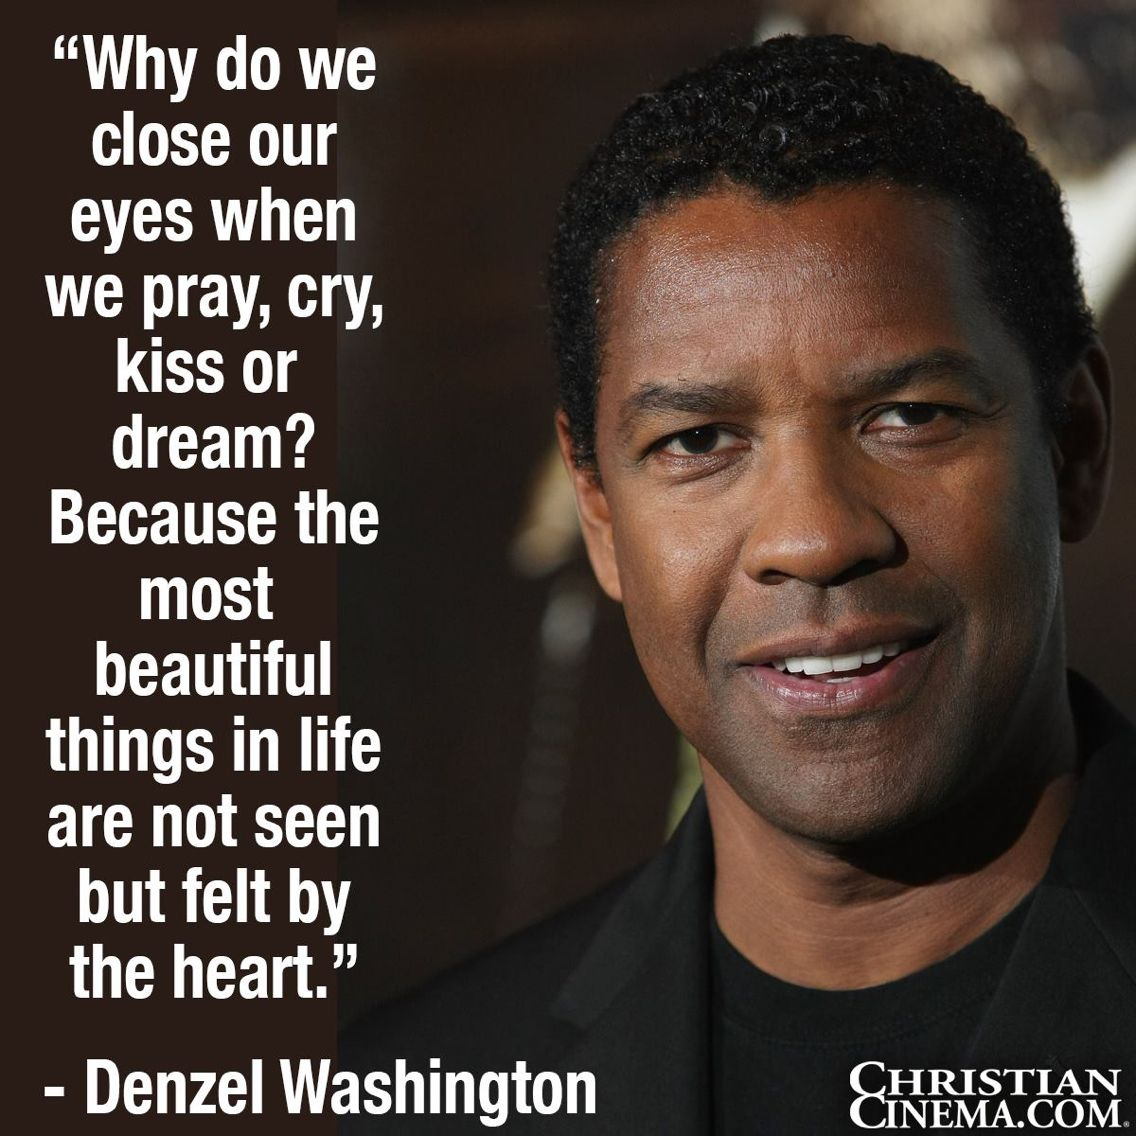 Denzel Washington Quotes Why Do We Cry When We Close Our Eyes Quotes  Pinterest  Crying